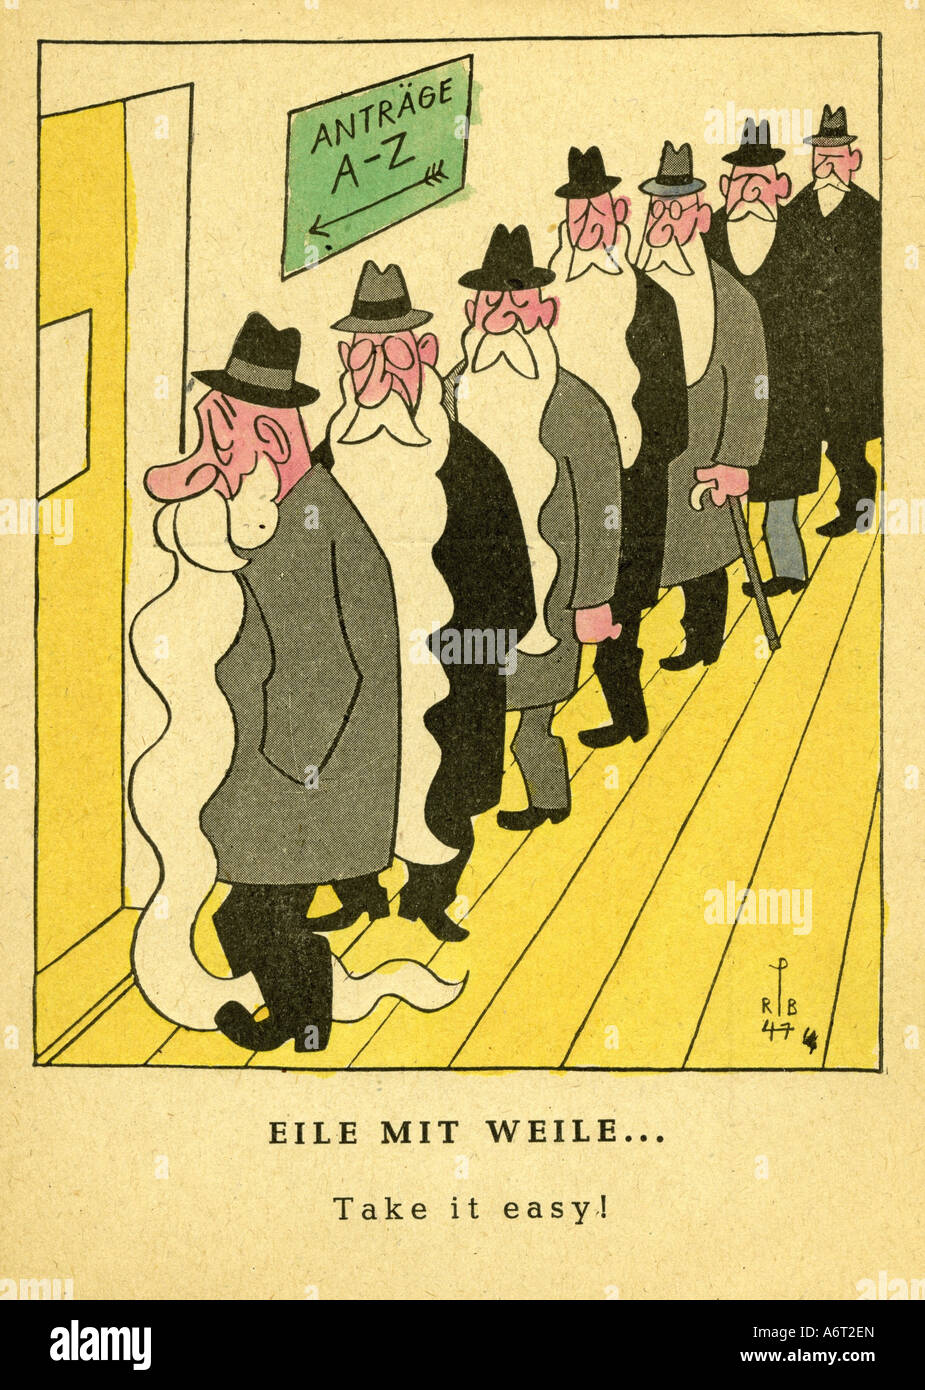 events, post war era, Germany, caricature, 'Take it easy', drawing by Rolf Peter Bauer, 1947, paper warfare, - Stock Image